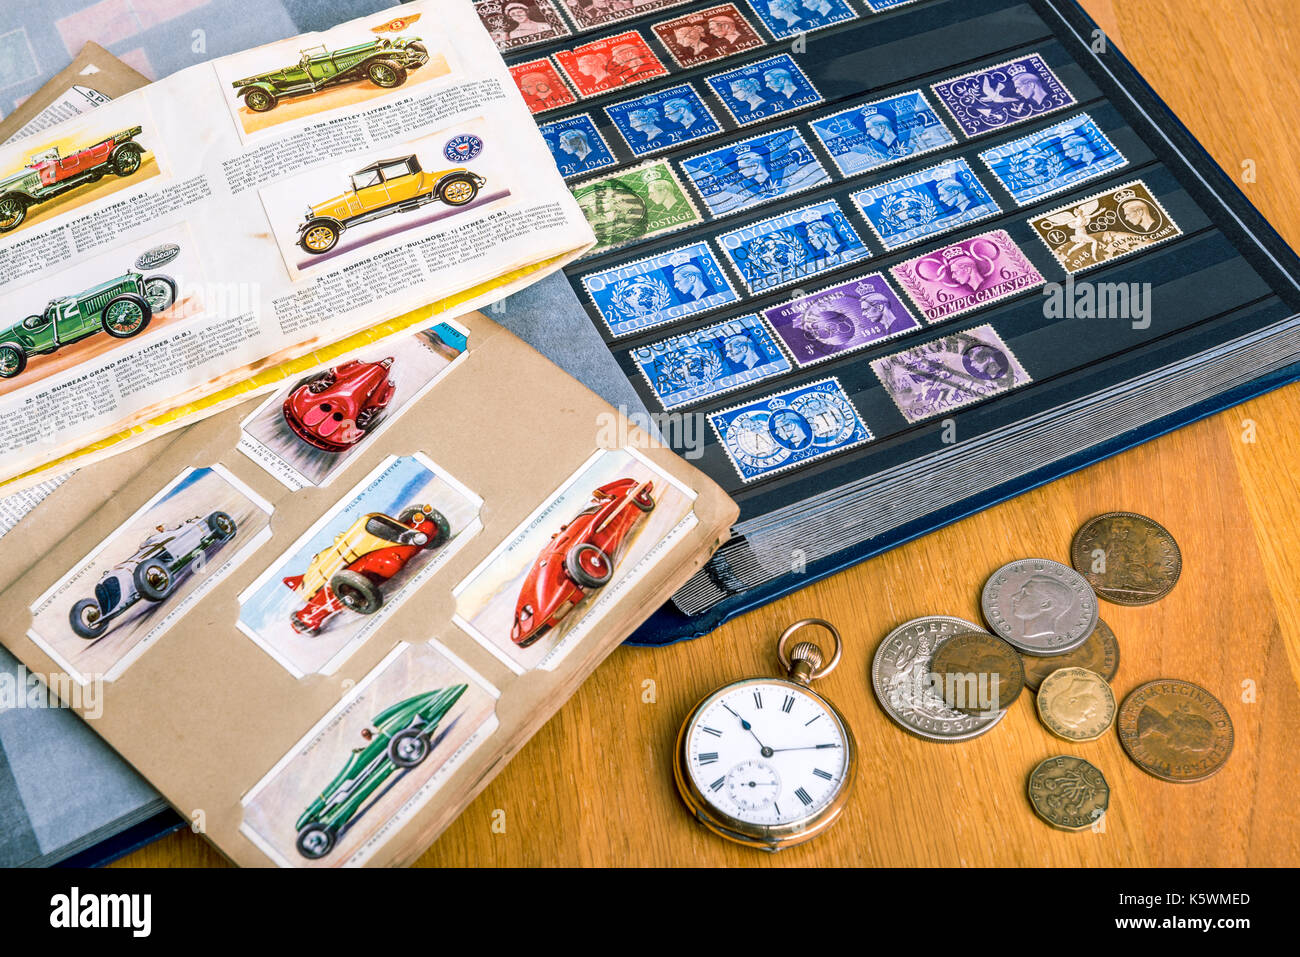 Stamps, cigarette cards, coins, watch. Collectable collection, nostalgia memories. - Stock Image